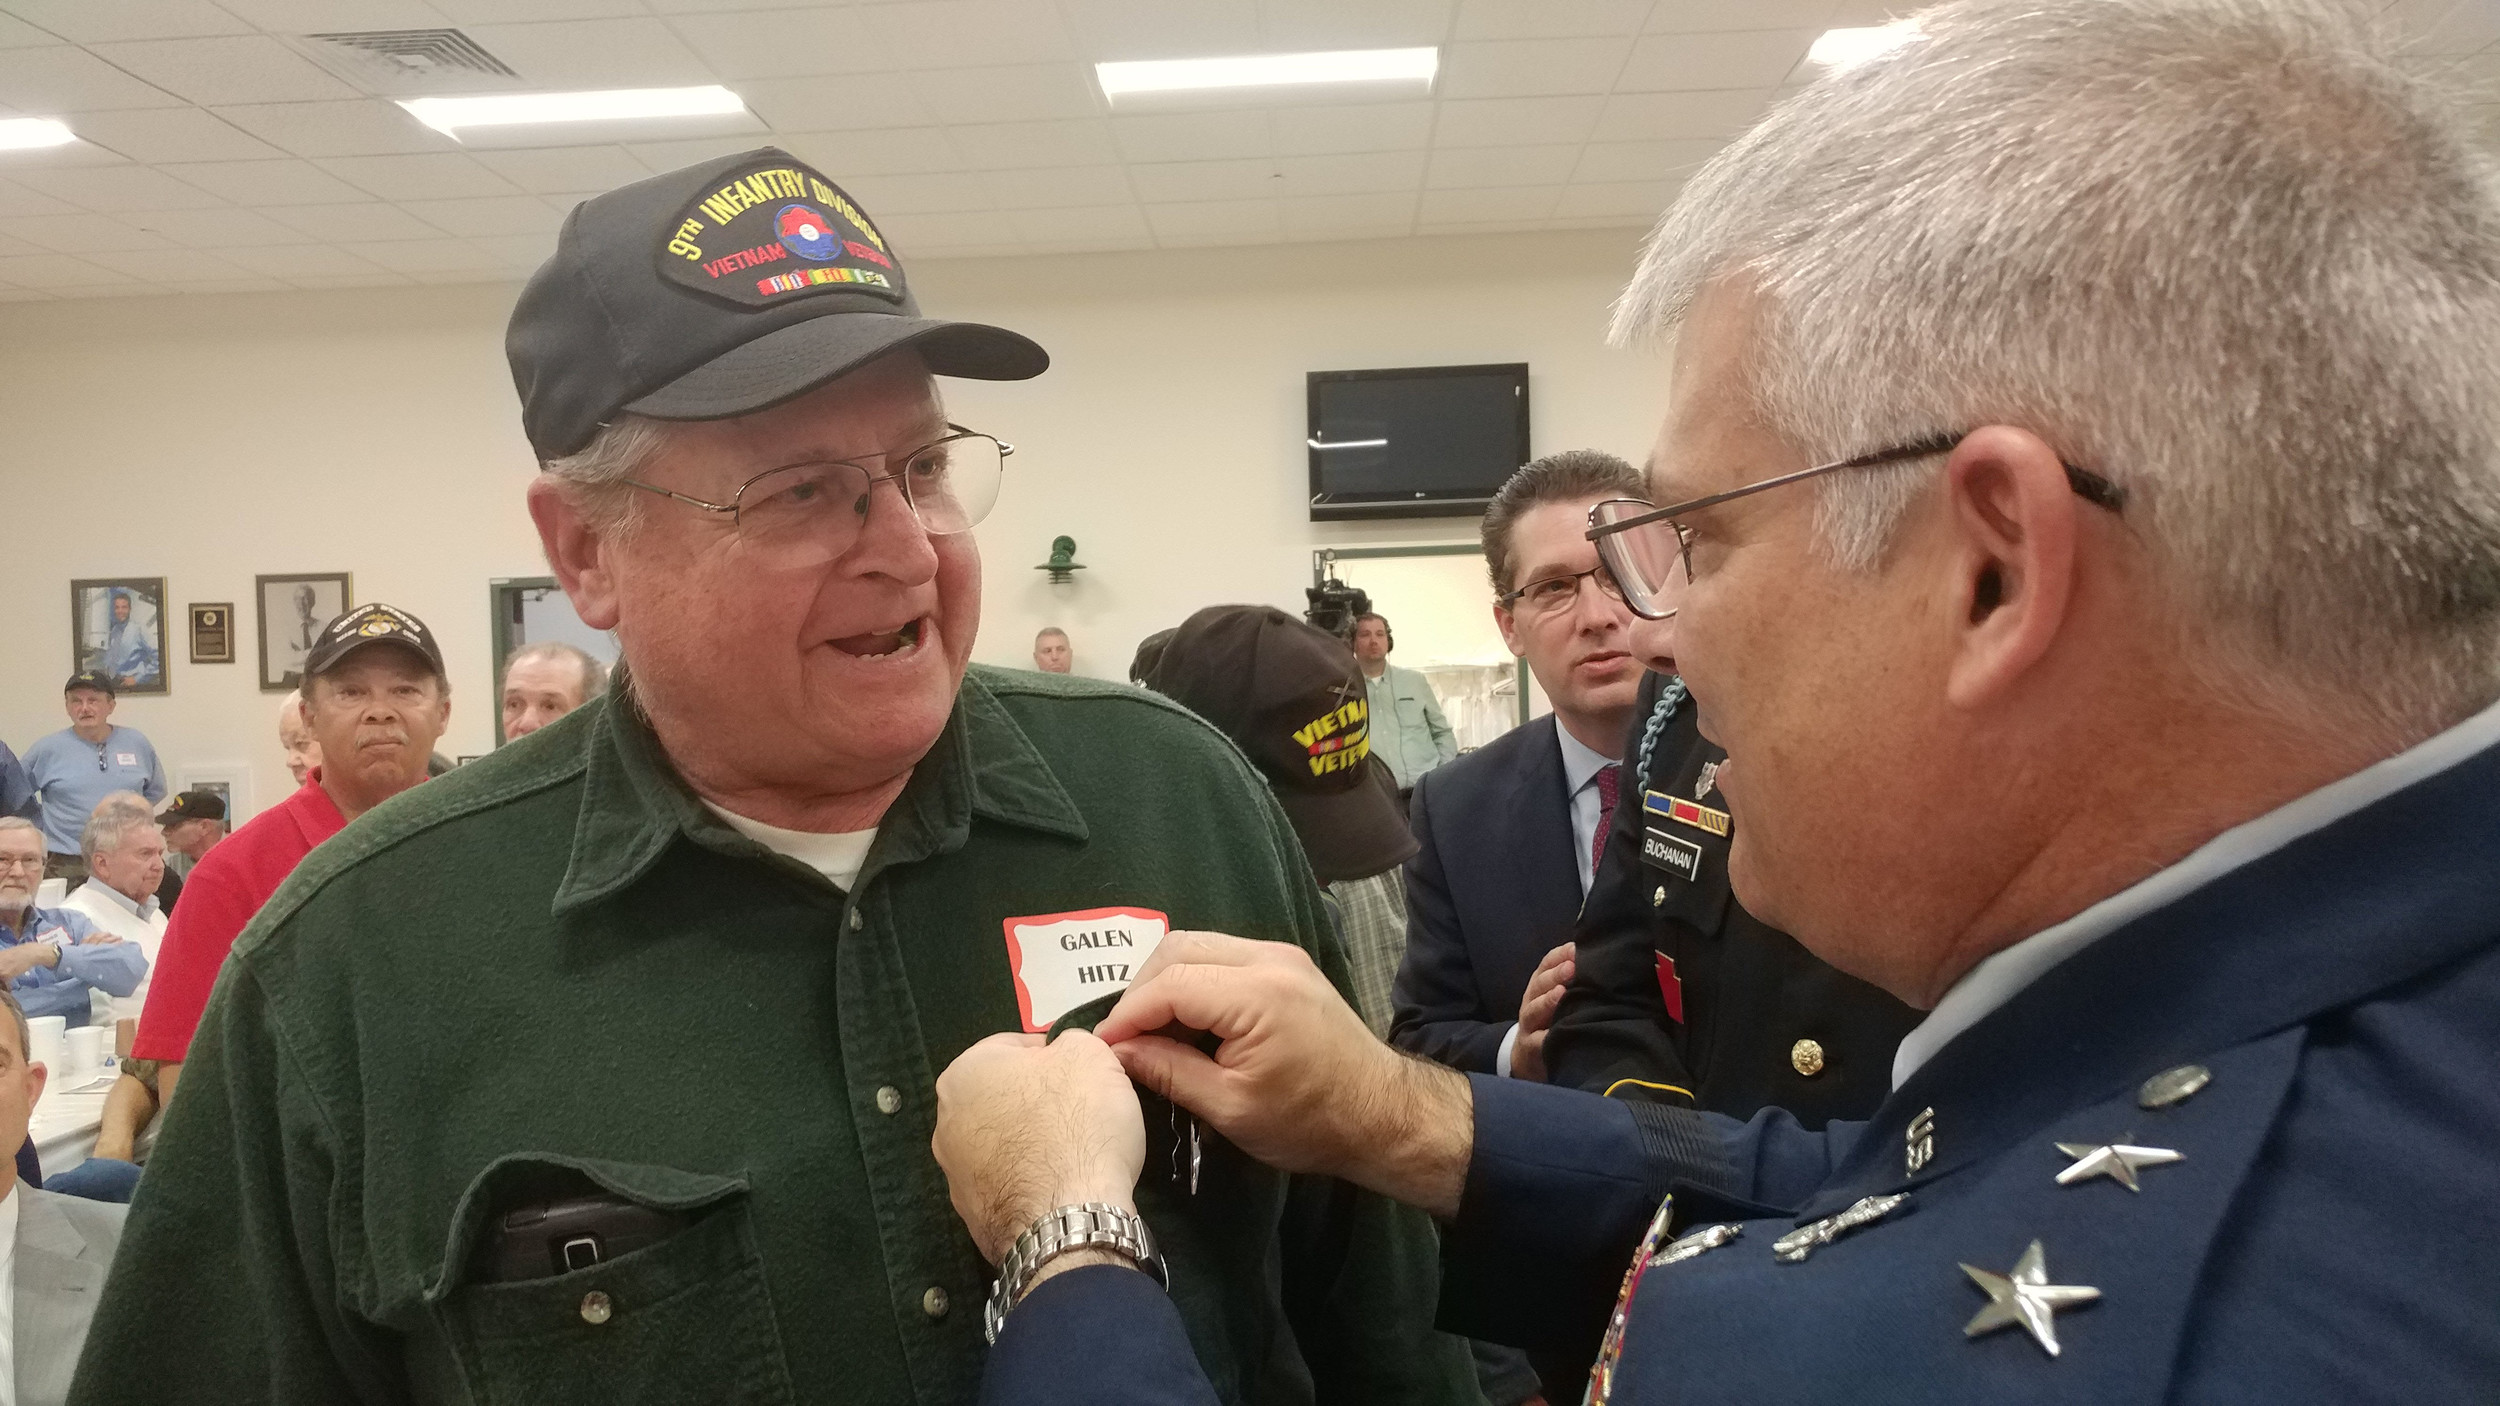 Galen Hitz receives his Vietnam Veteran lapel pin from Major General Anthony Carrelli, Adjutant General of Pennsylvania at the 2017 Veterans breakfast and recognition ceremony Friday, Nov. 3 at the Lower Swatara Fire Department.